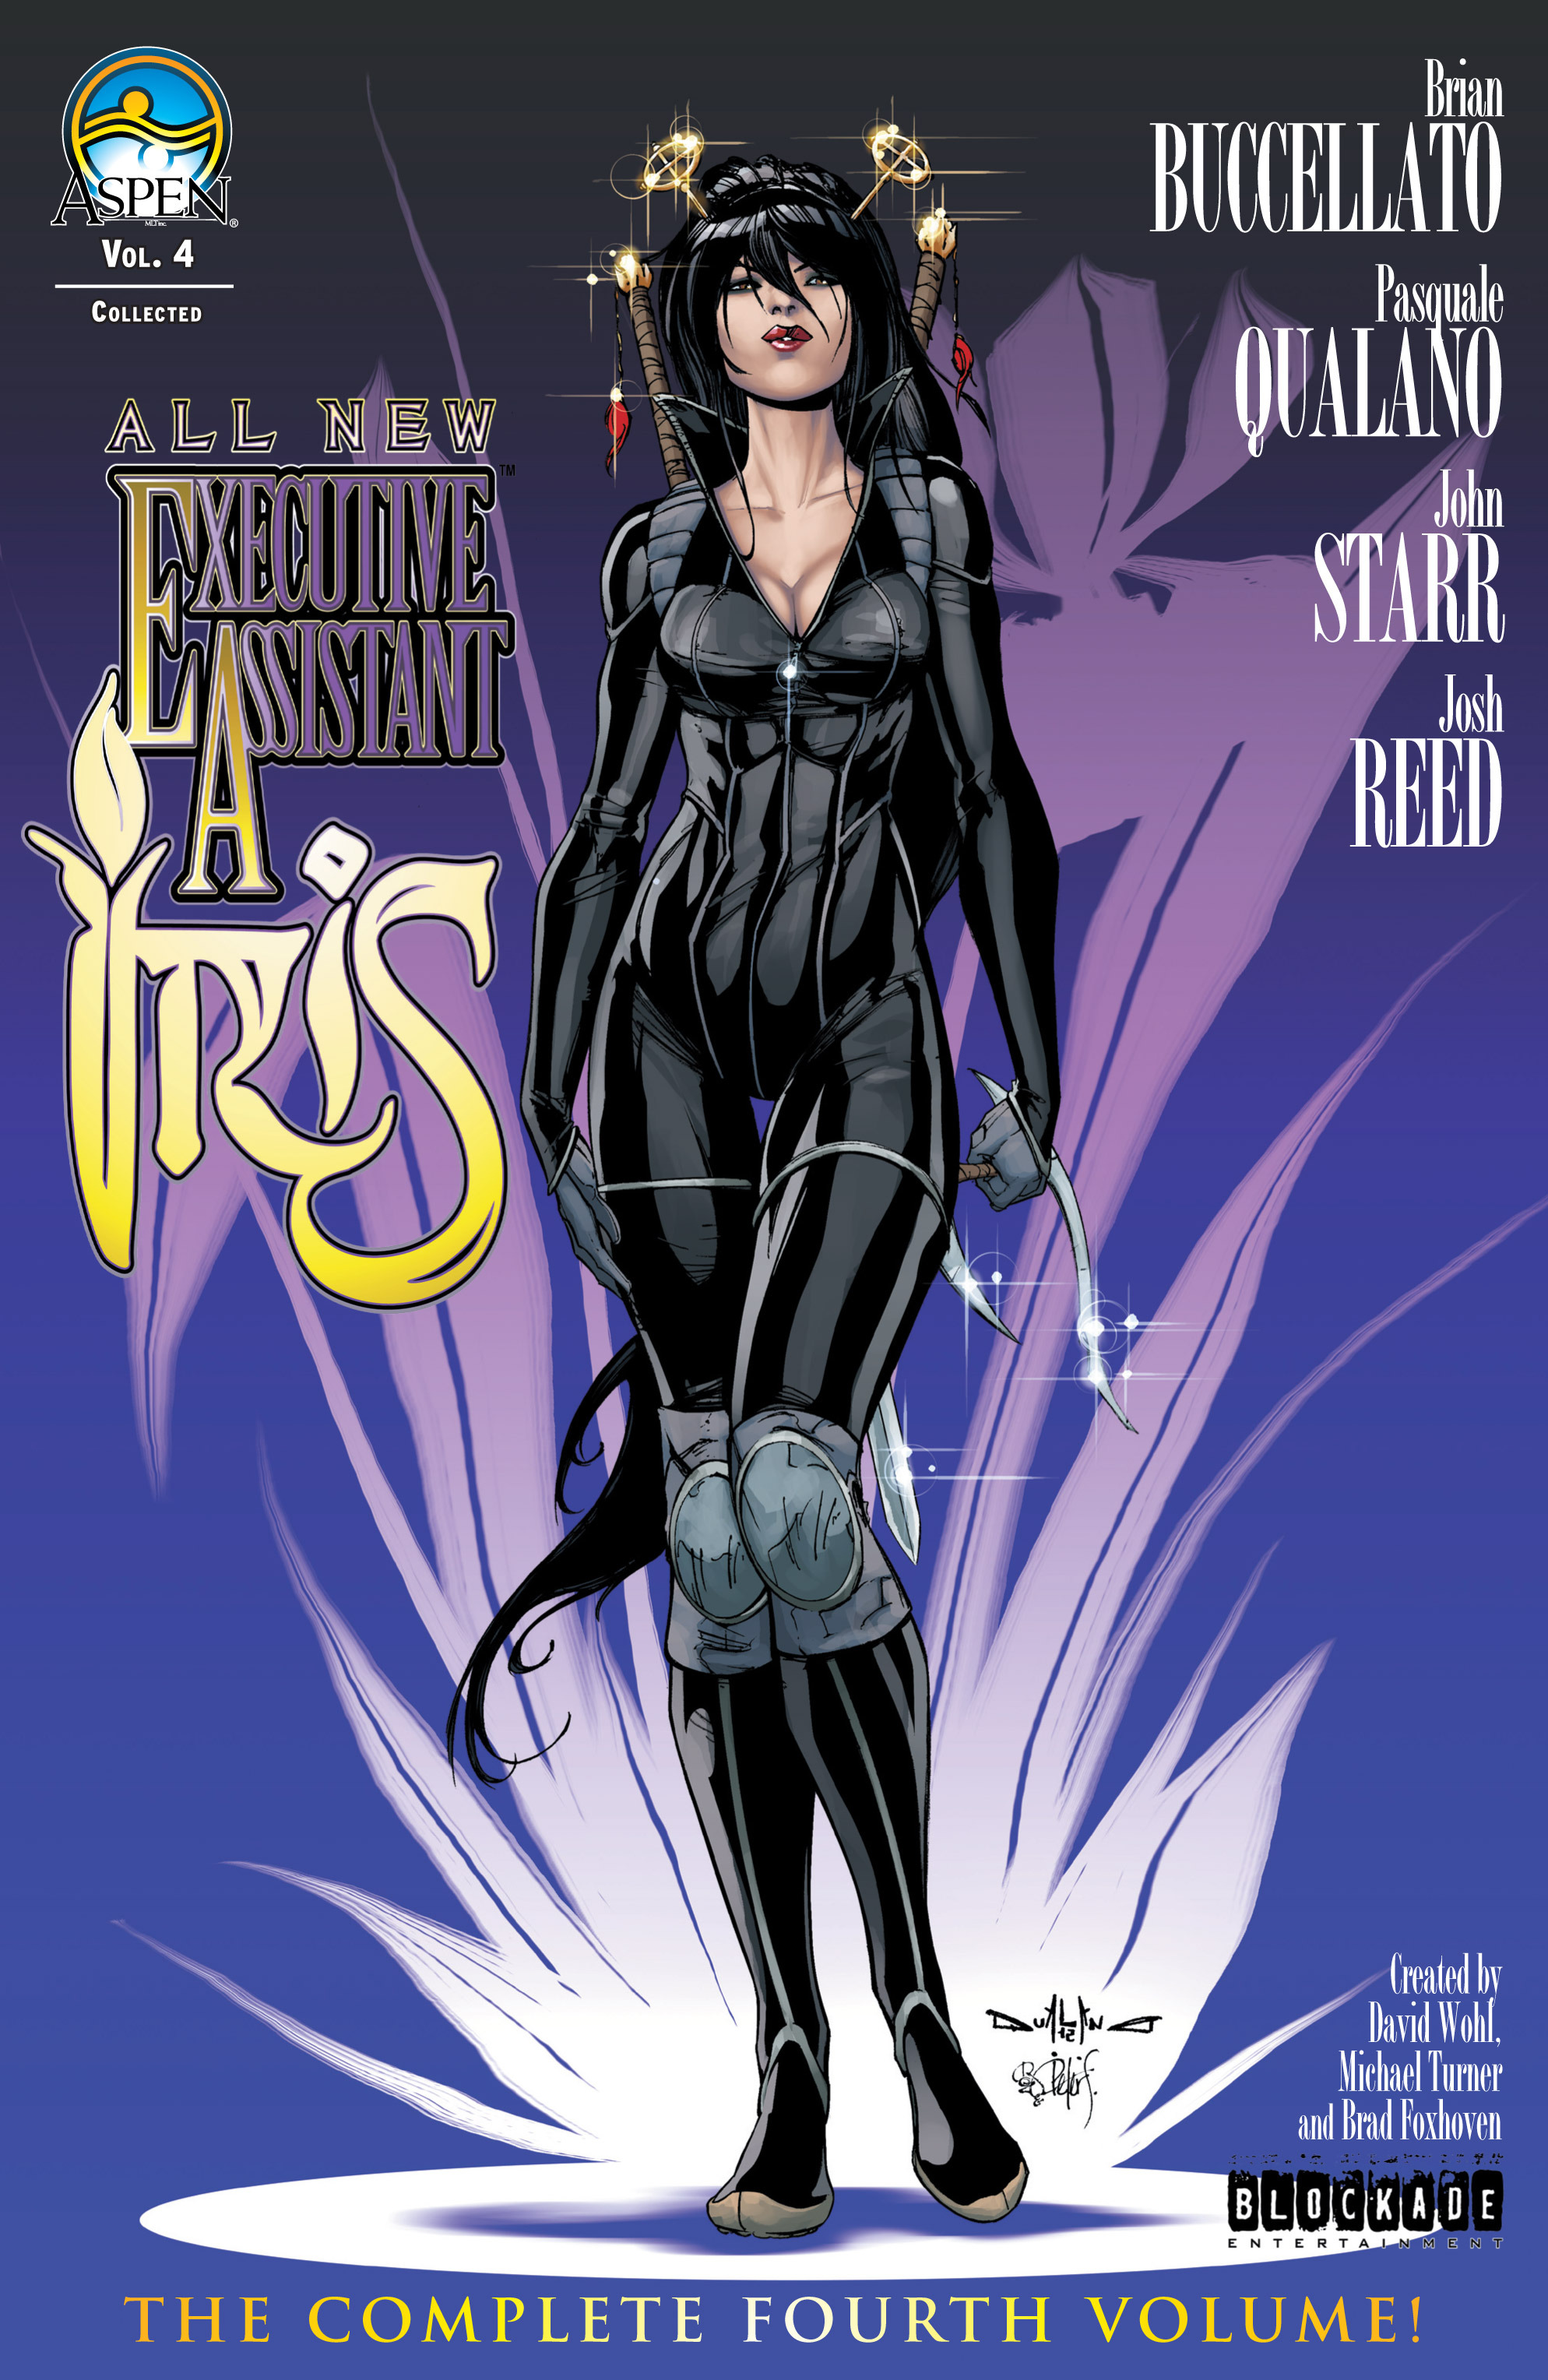 Read online All New Executive Assistant: Iris comic -  Issue # TPB - 1